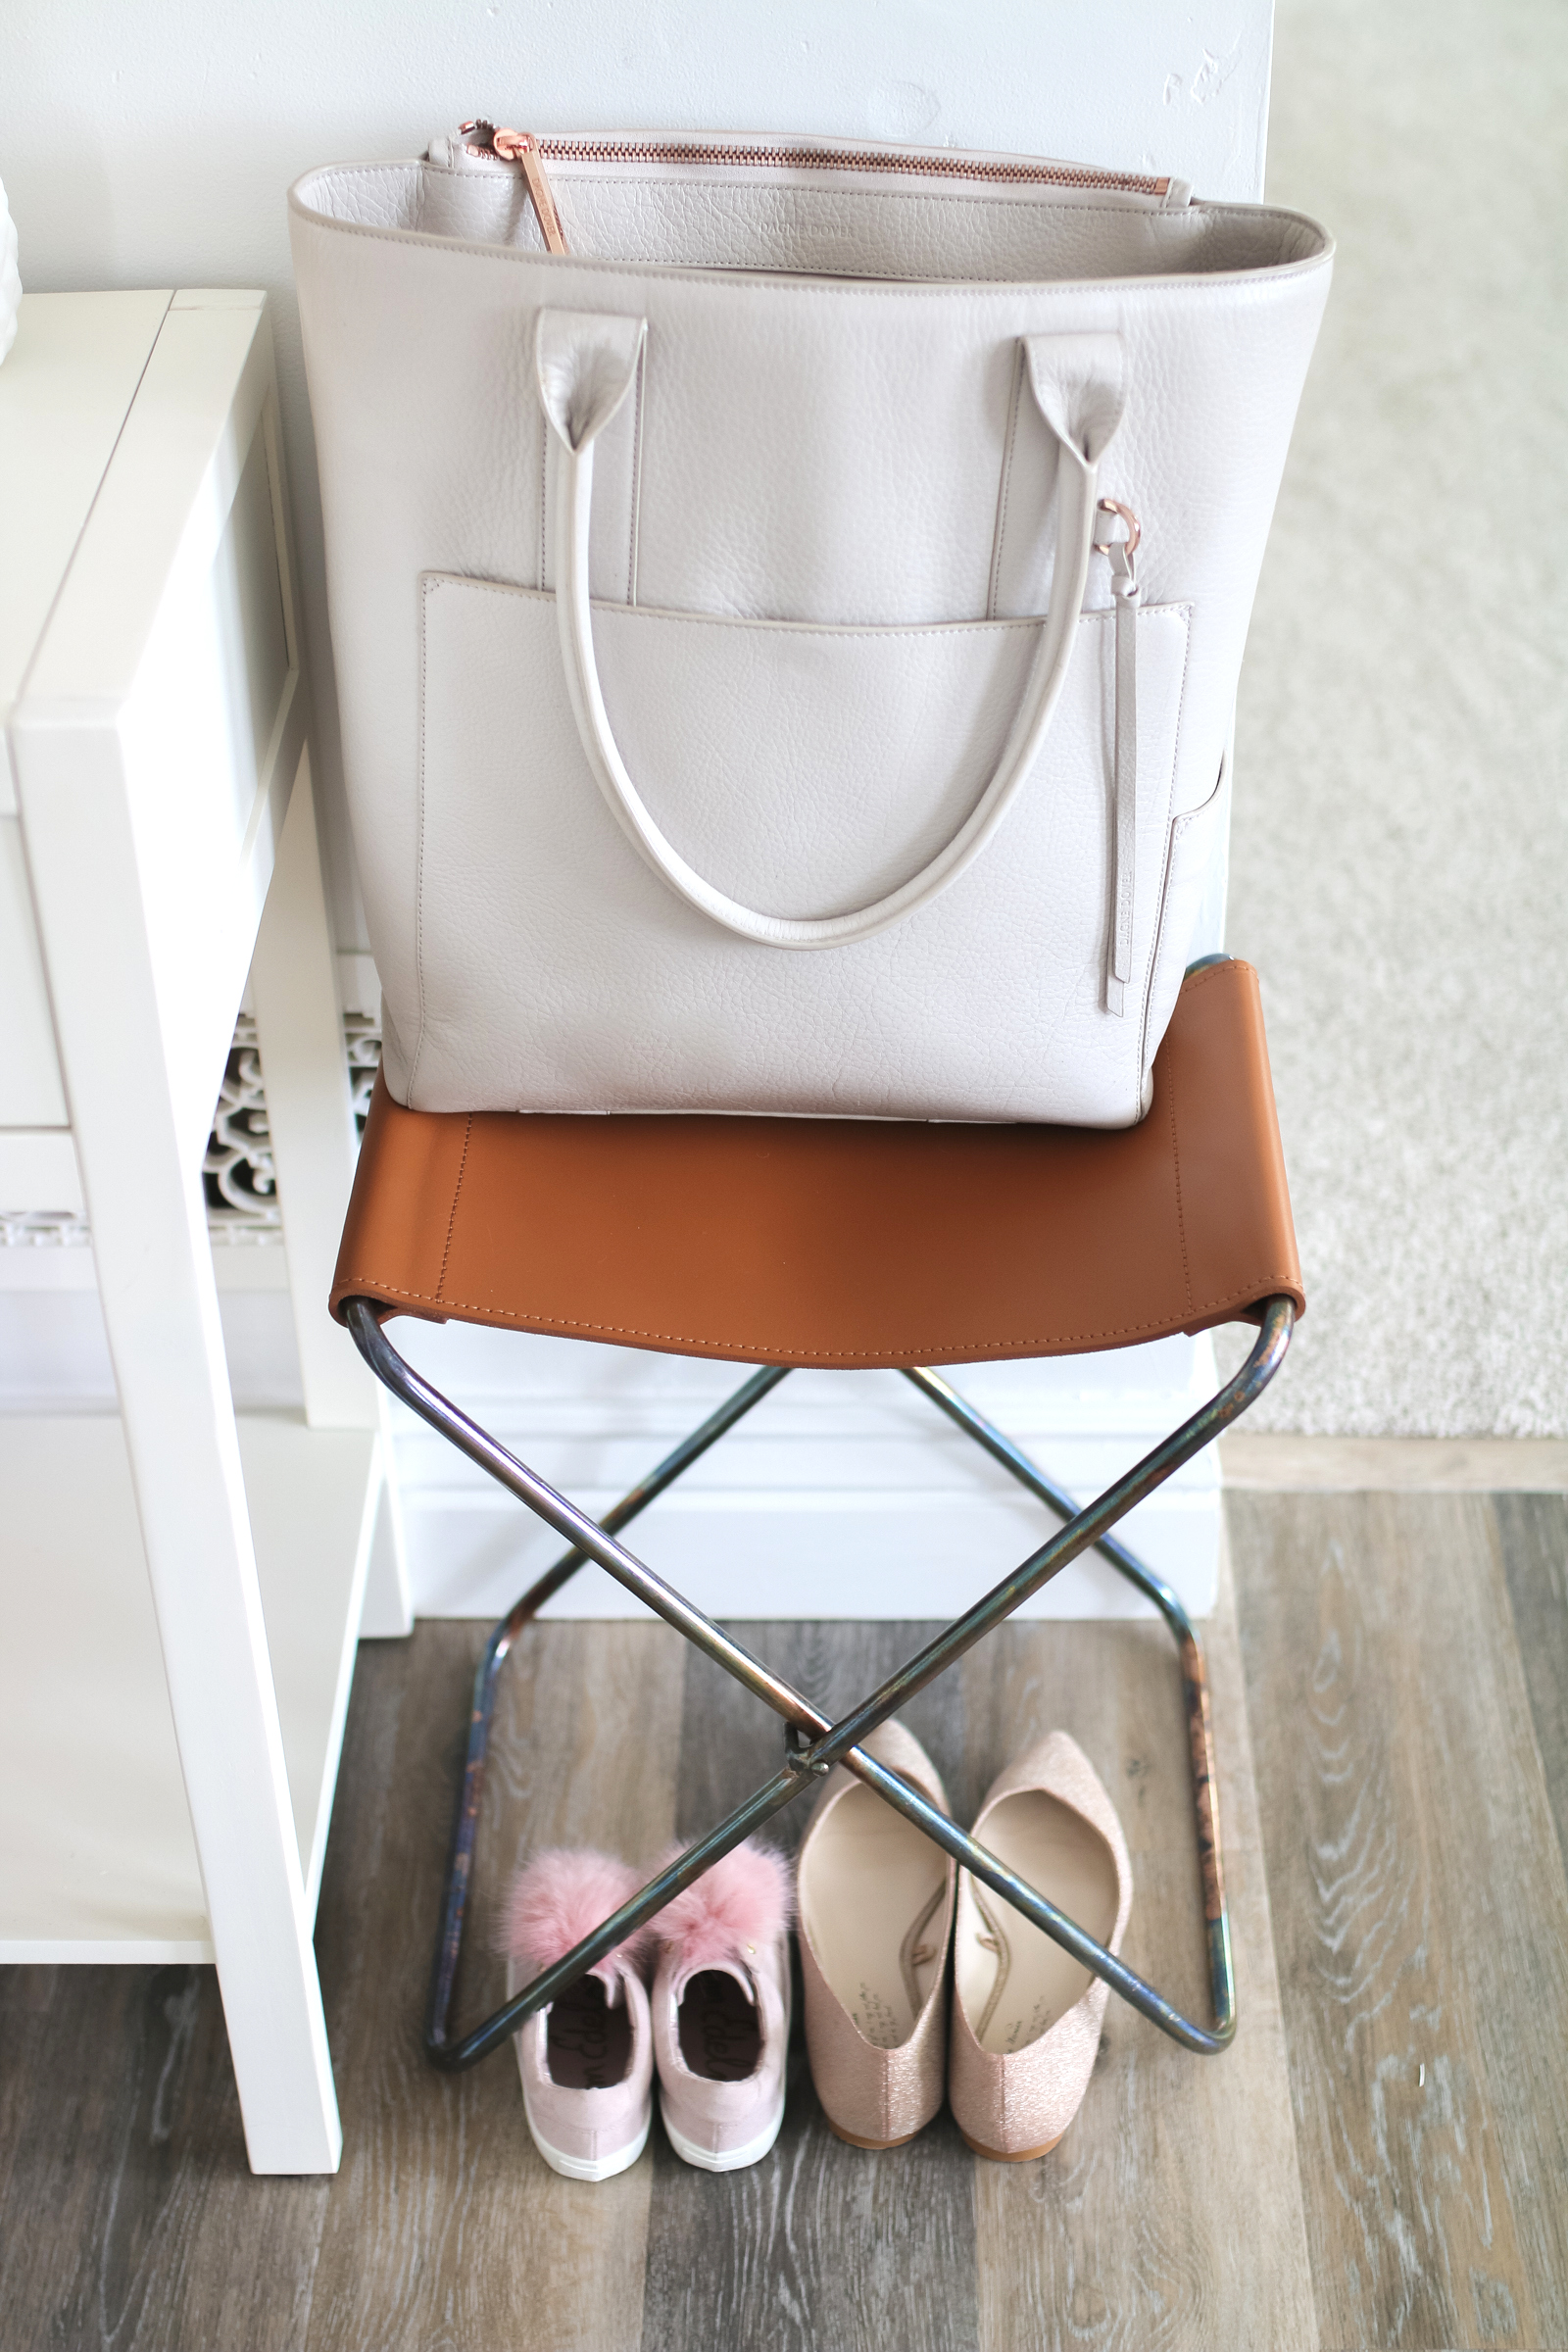 Our New Home Big Reveal: Stylish Entryway Decor Idea by popular blogger Sandy A La Mode